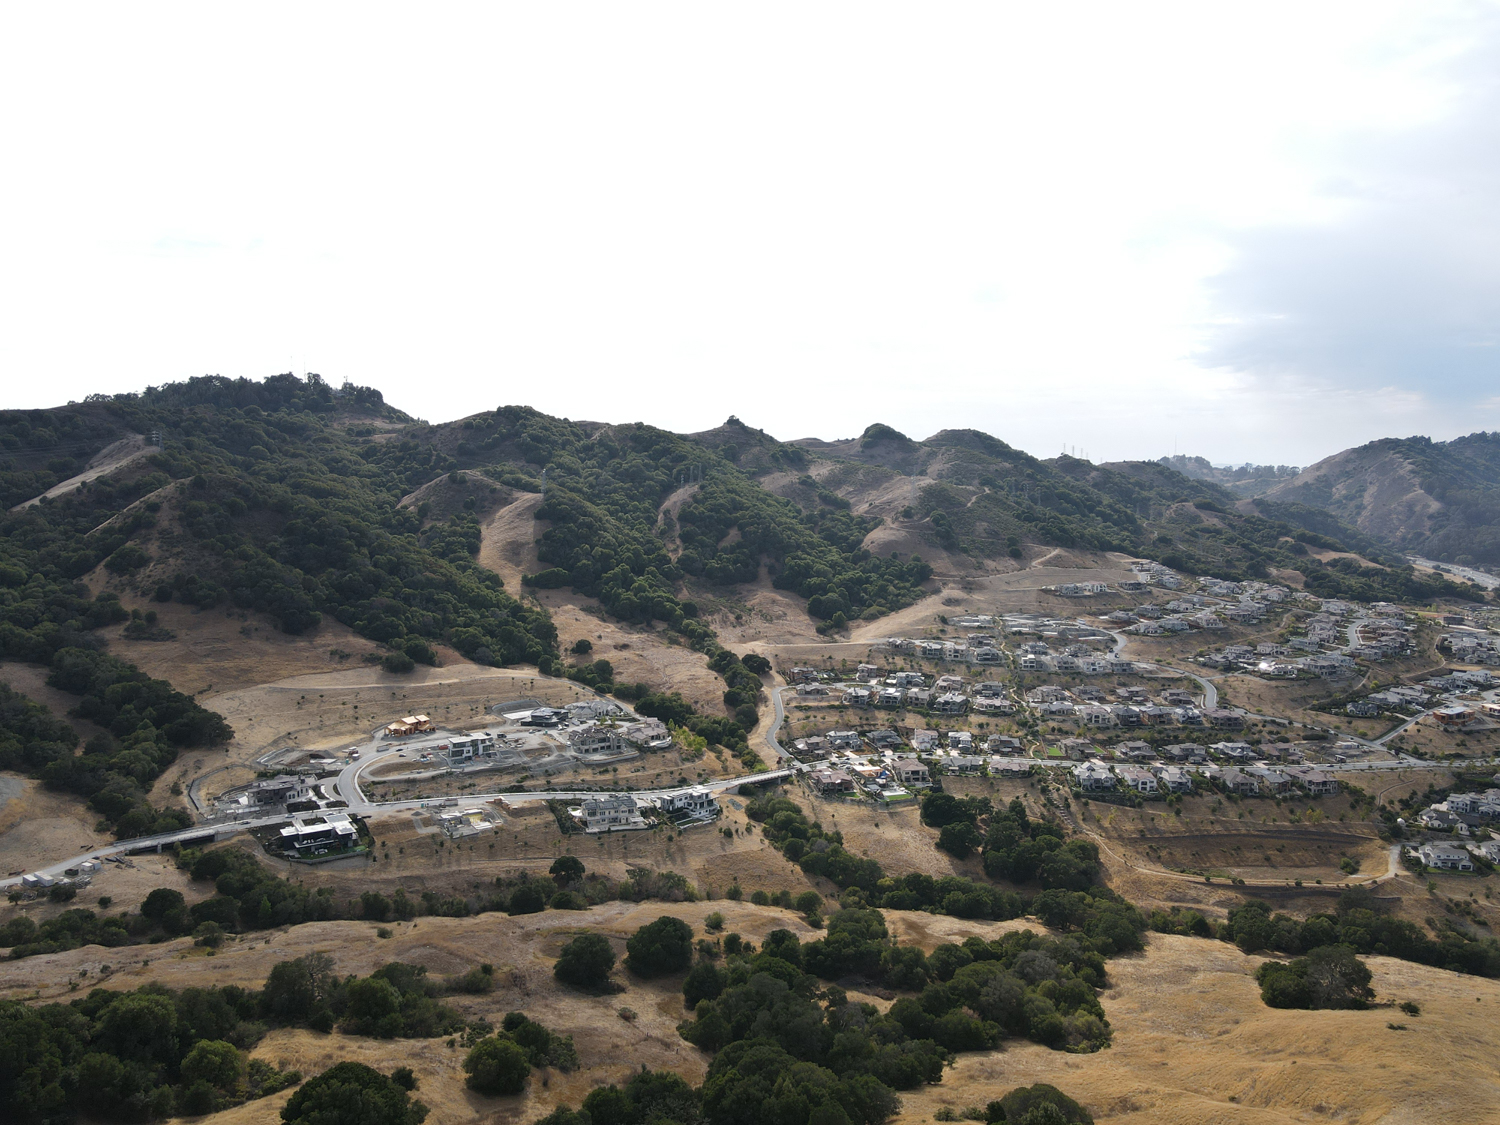 Wilder Subdivision aerial view, image by Andrew Campbell Nelson